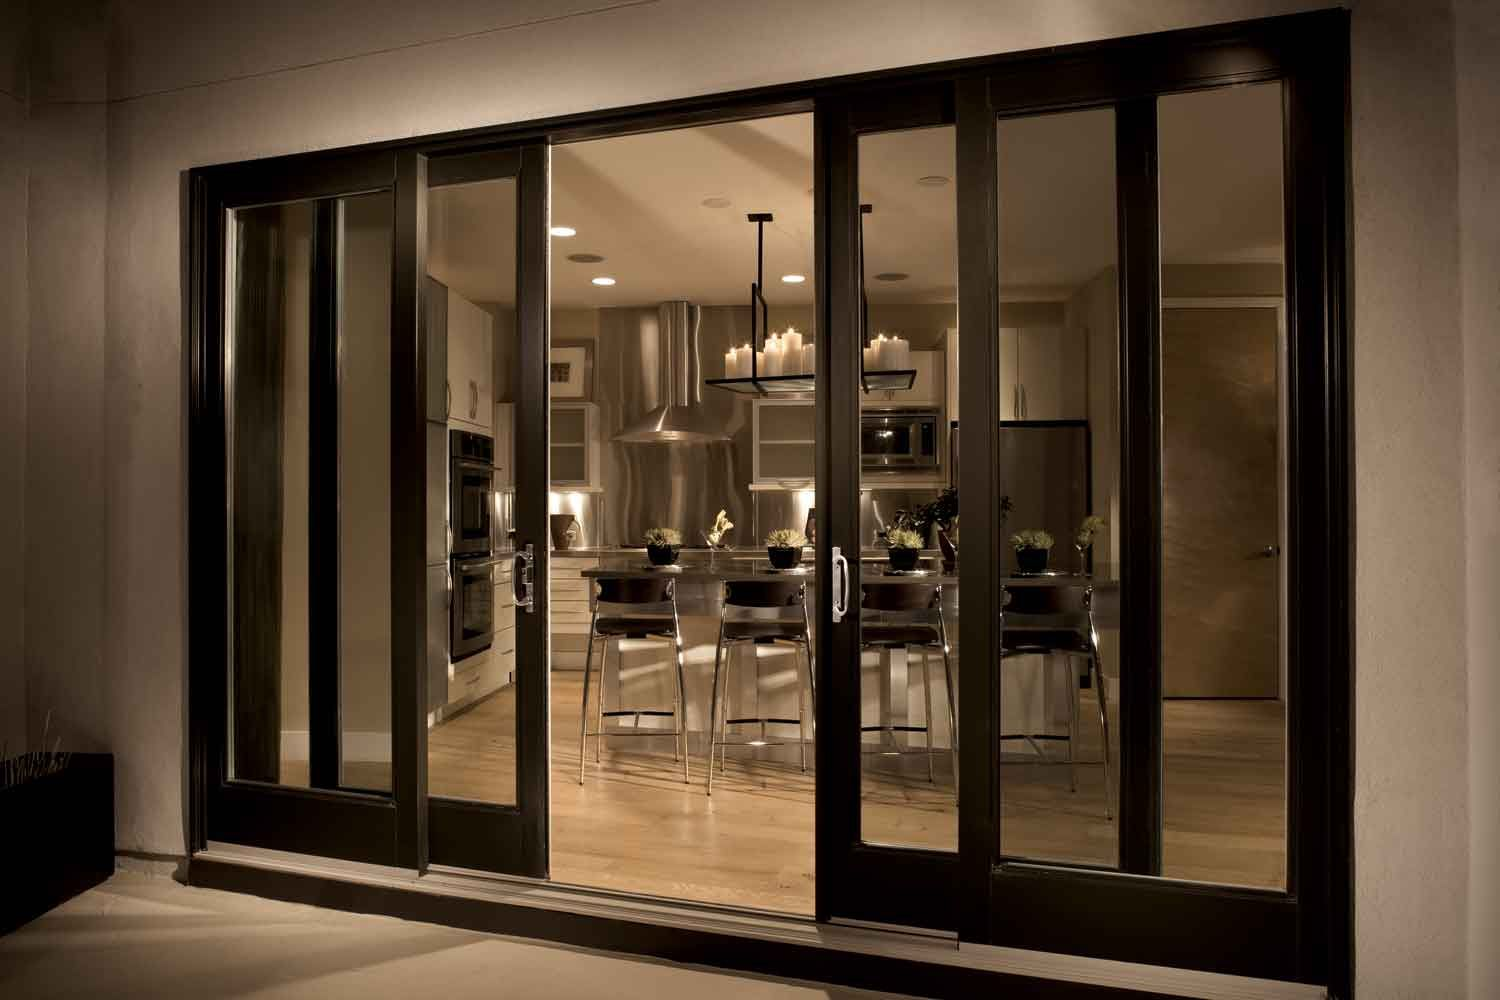 Double Sliding Doors exterior double glass patio doors | patio doors are doors that